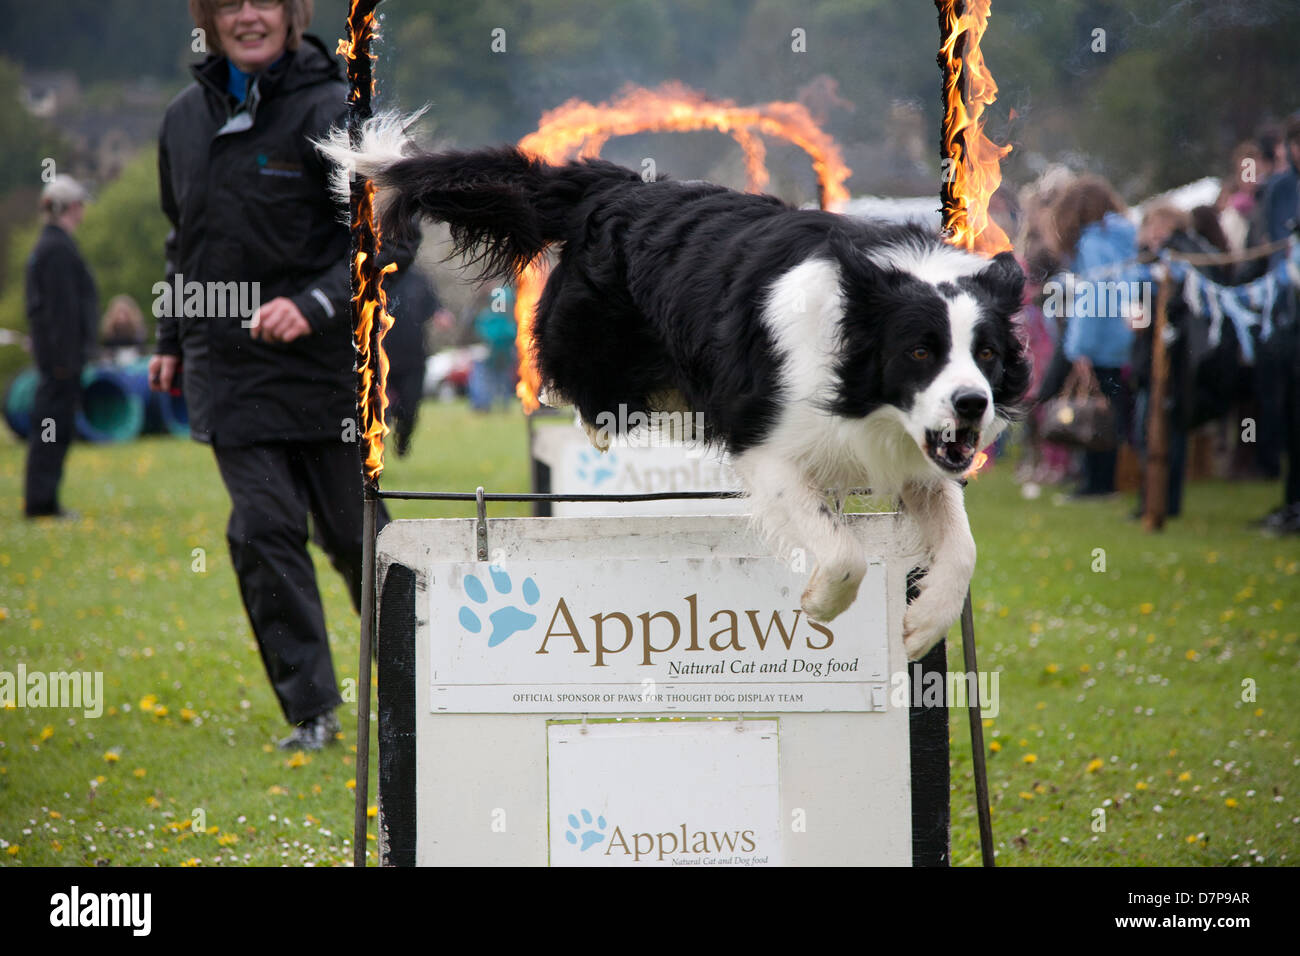 A Border Collie dog jumping through a ring of fire at The Randwick May day Festival Gloucestershire England - Stock Image